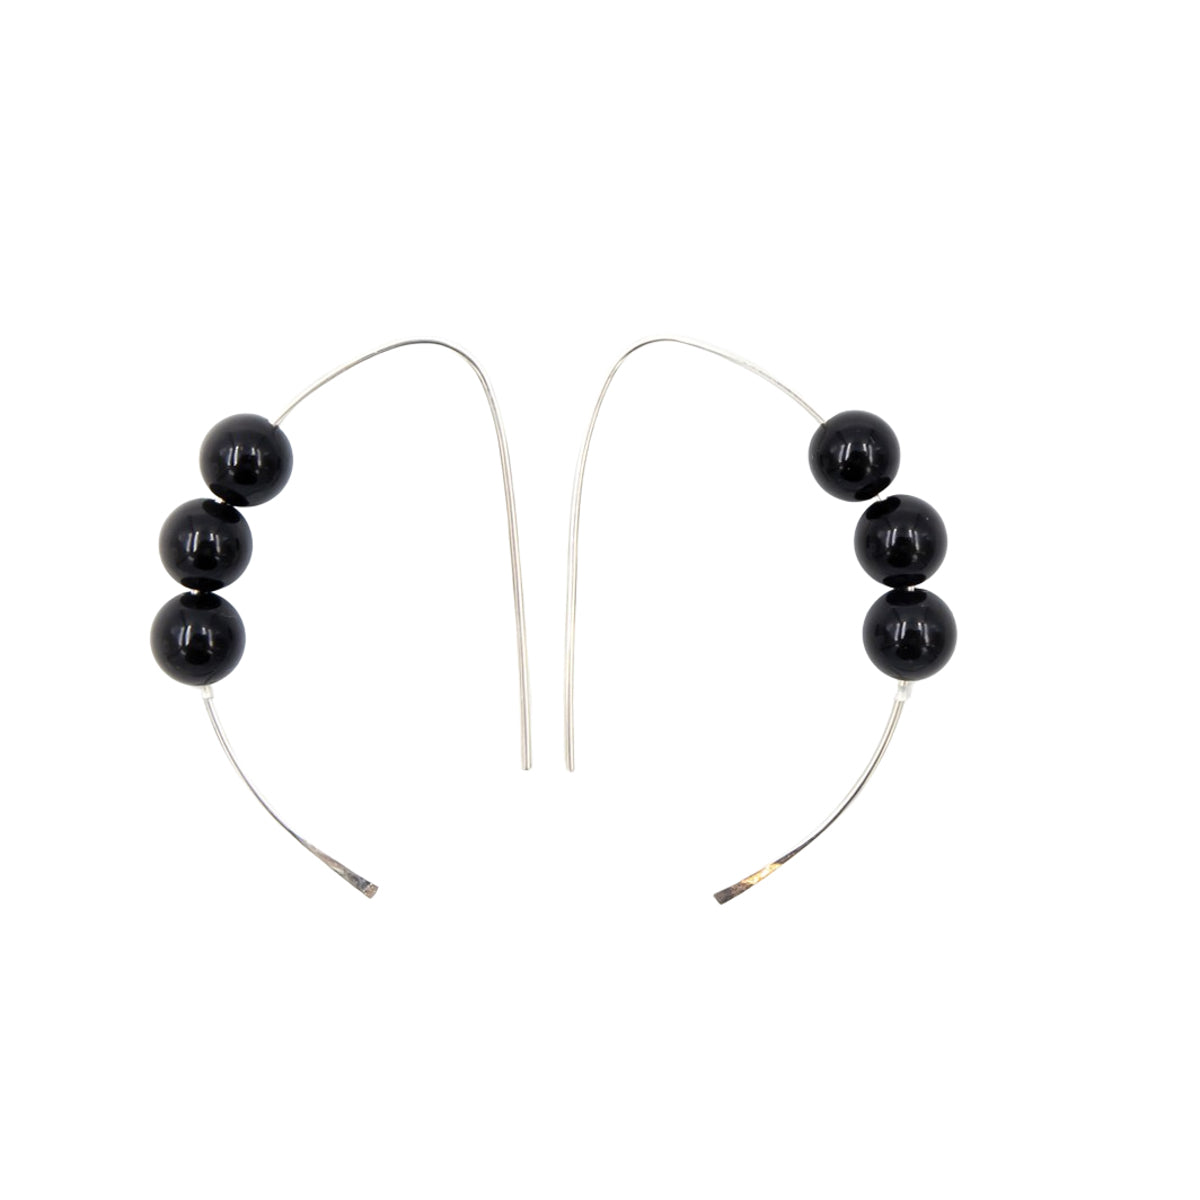 Handmade onyx sterling silver curves earrings